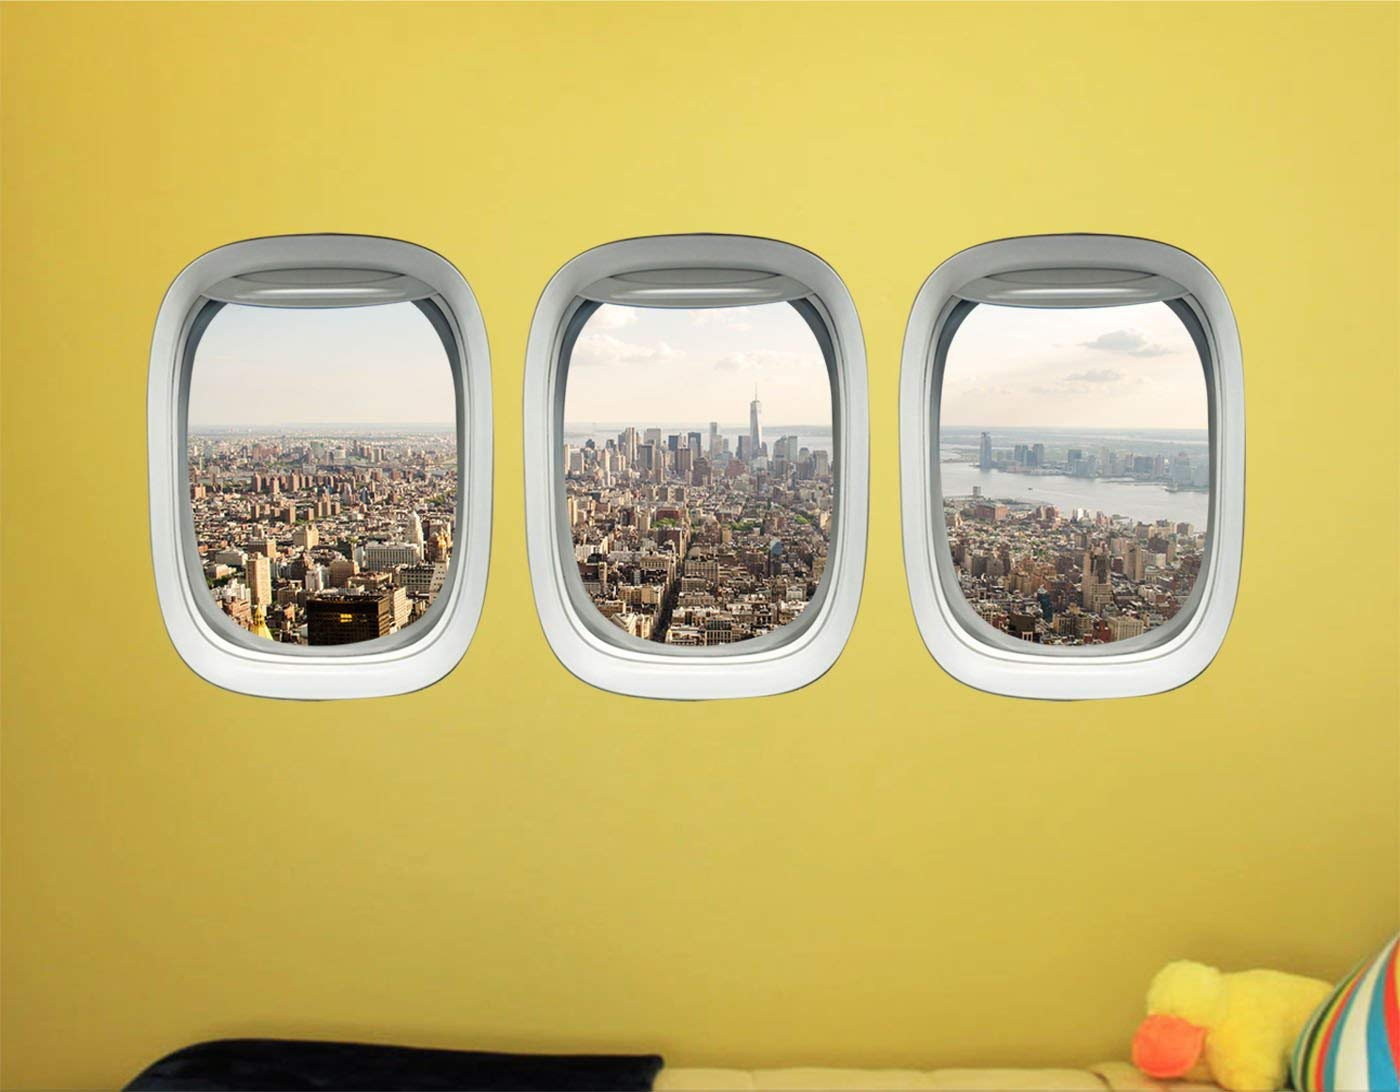 VWAQ NYC Wall Sticker - New York City Window Decal - Airplane Window Clings For Kids -PPW44 - VWAQ Vinyl Wall Art Quotes and Prints